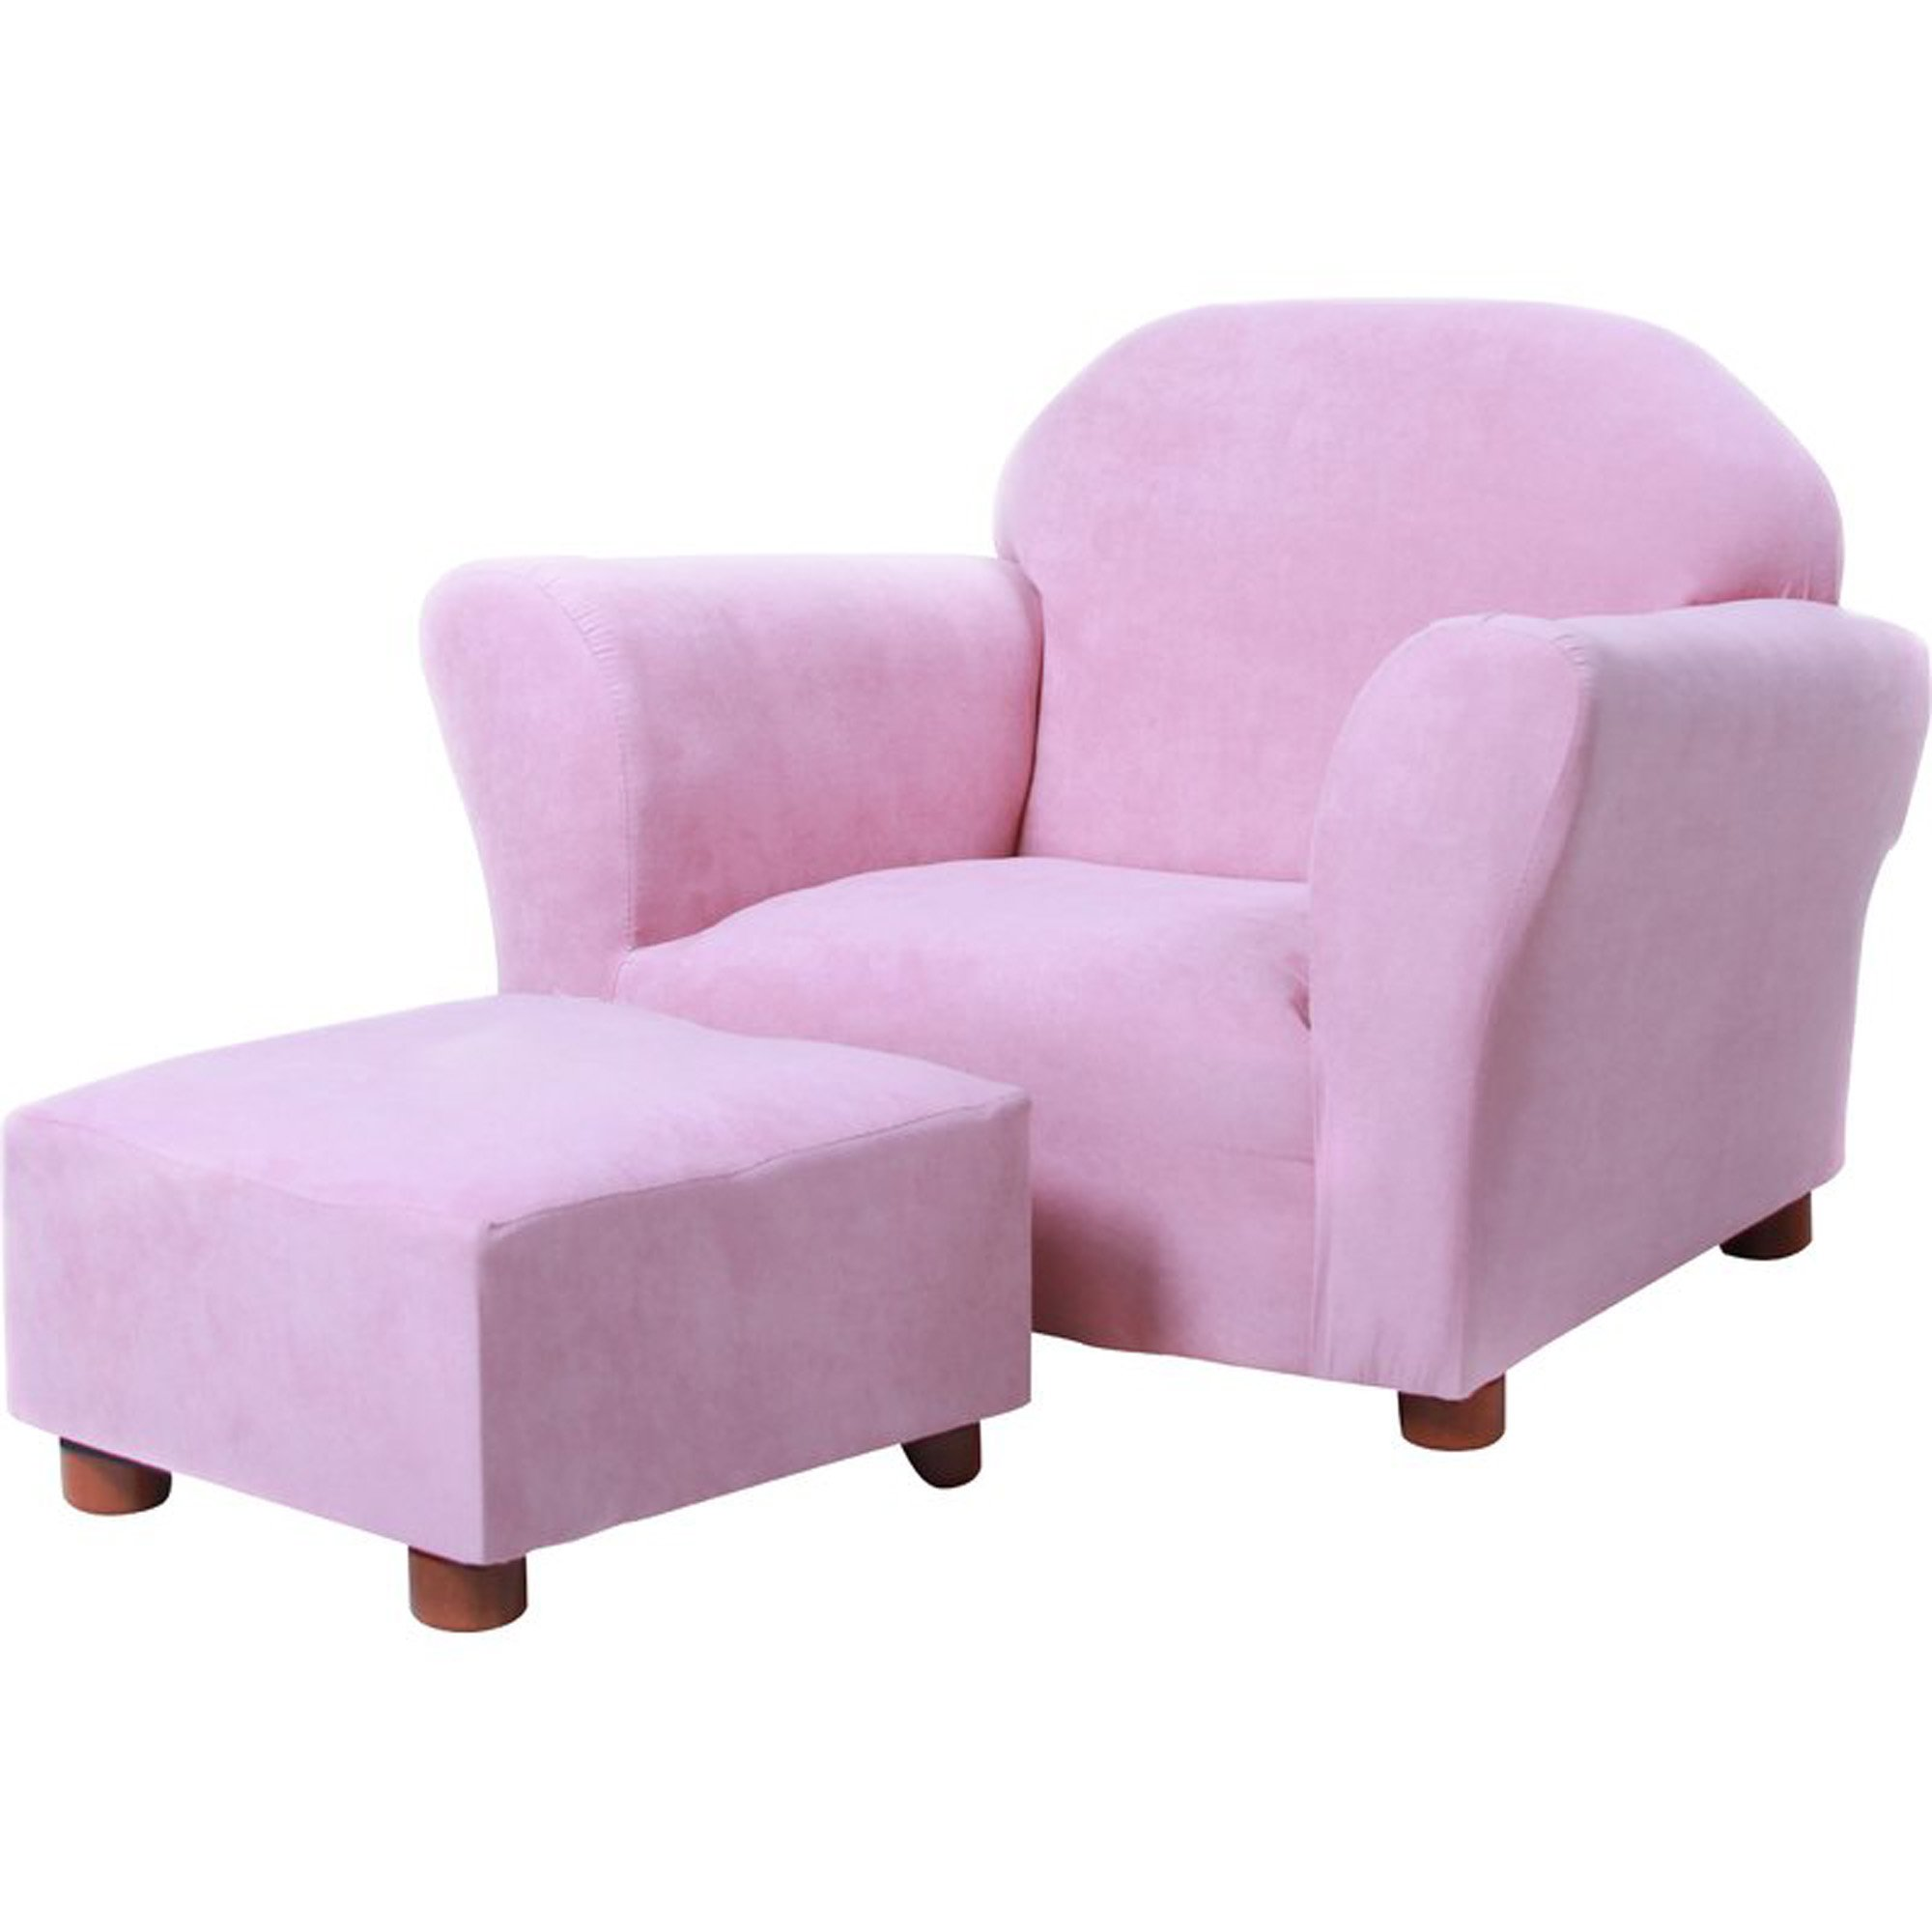 Club Chair For Kids With Ottoman Set, Soft Microfiber Children Armchair (Pink)